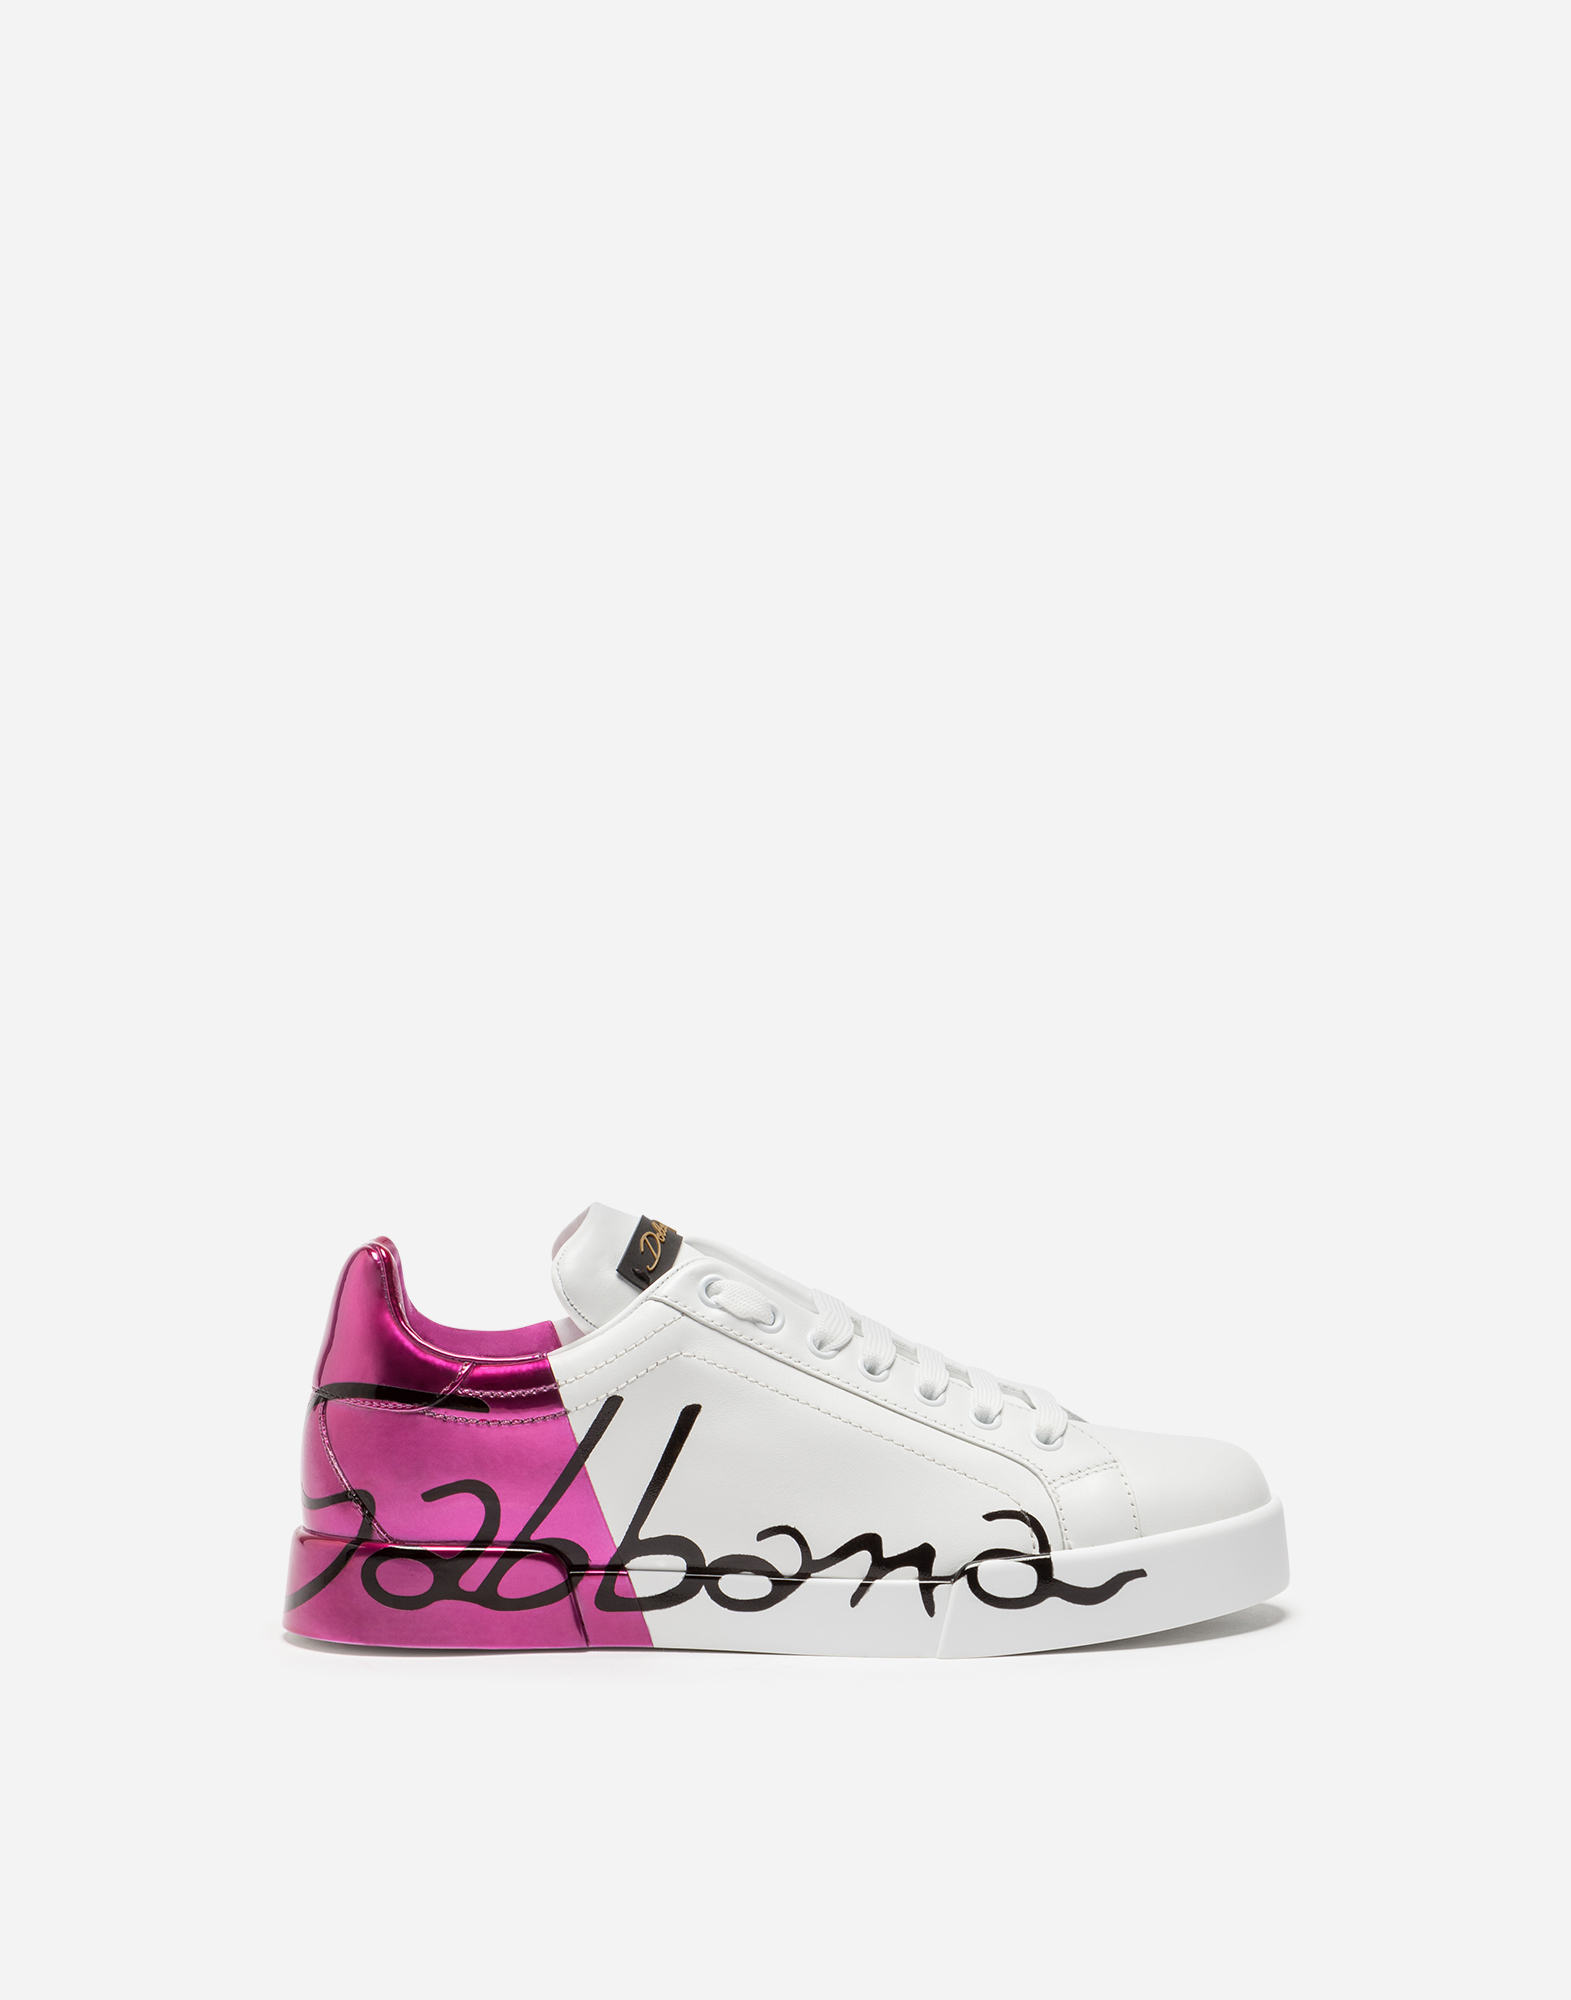 LEATHER PORTOFINO SNEAKERS WITH METALLIC HEEL